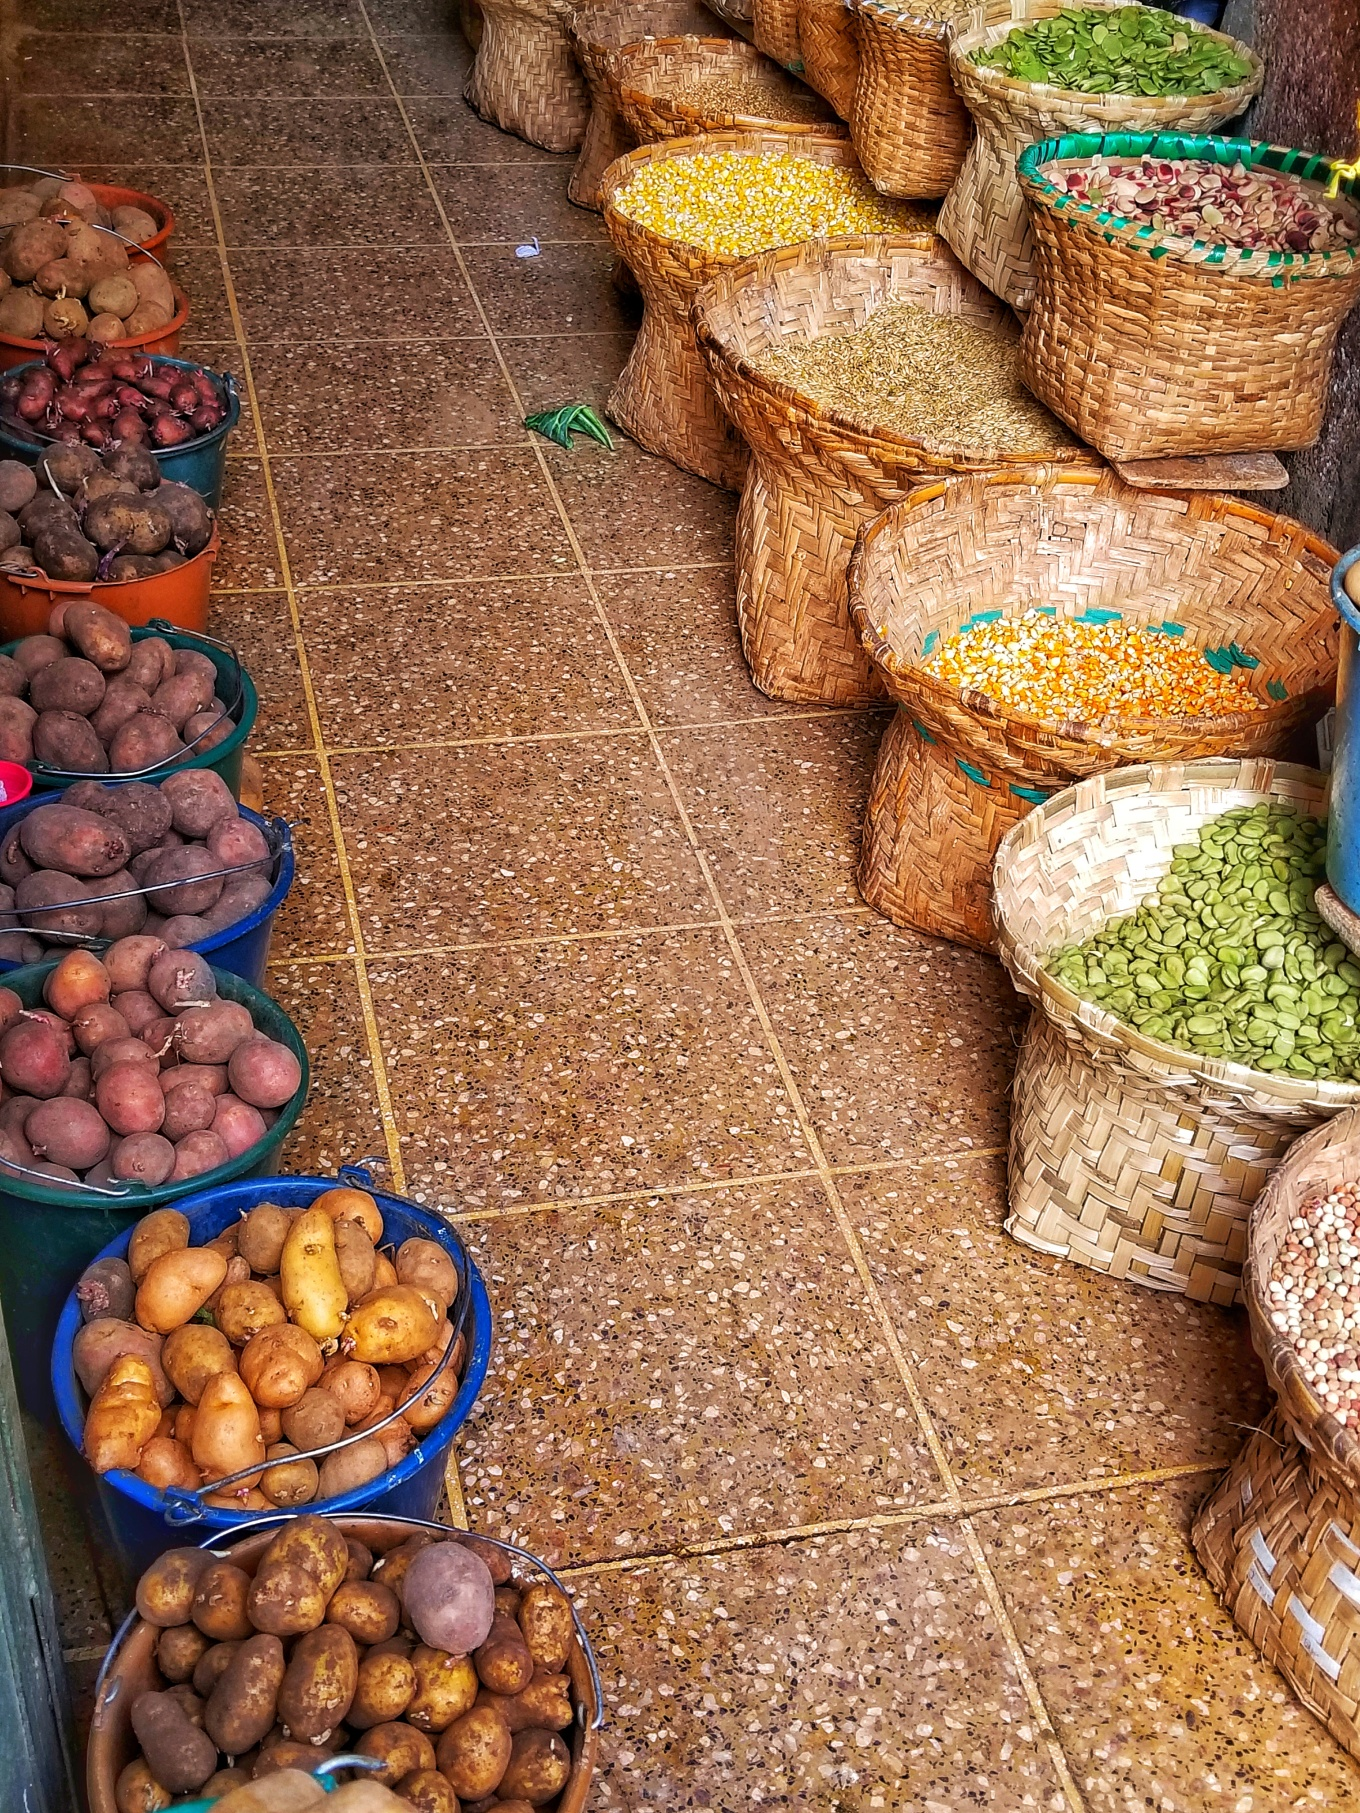 Baskets of Potatoes and Legumes at Market in Cuenca, Ecuador